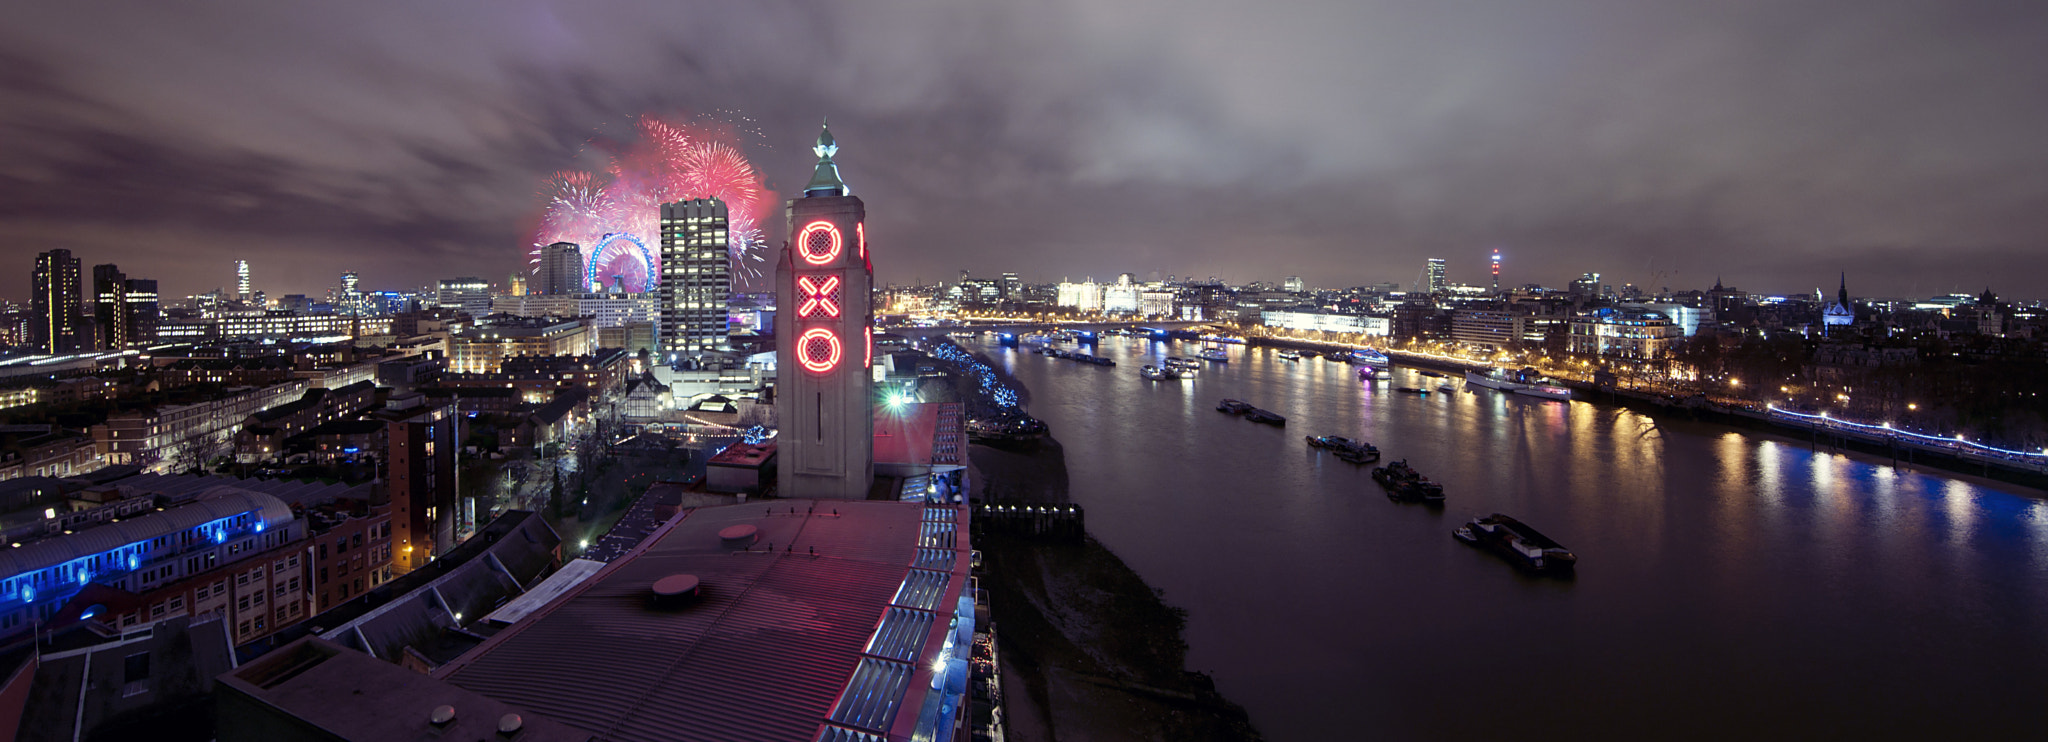 Photograph London Calling by James Charlick on 500px